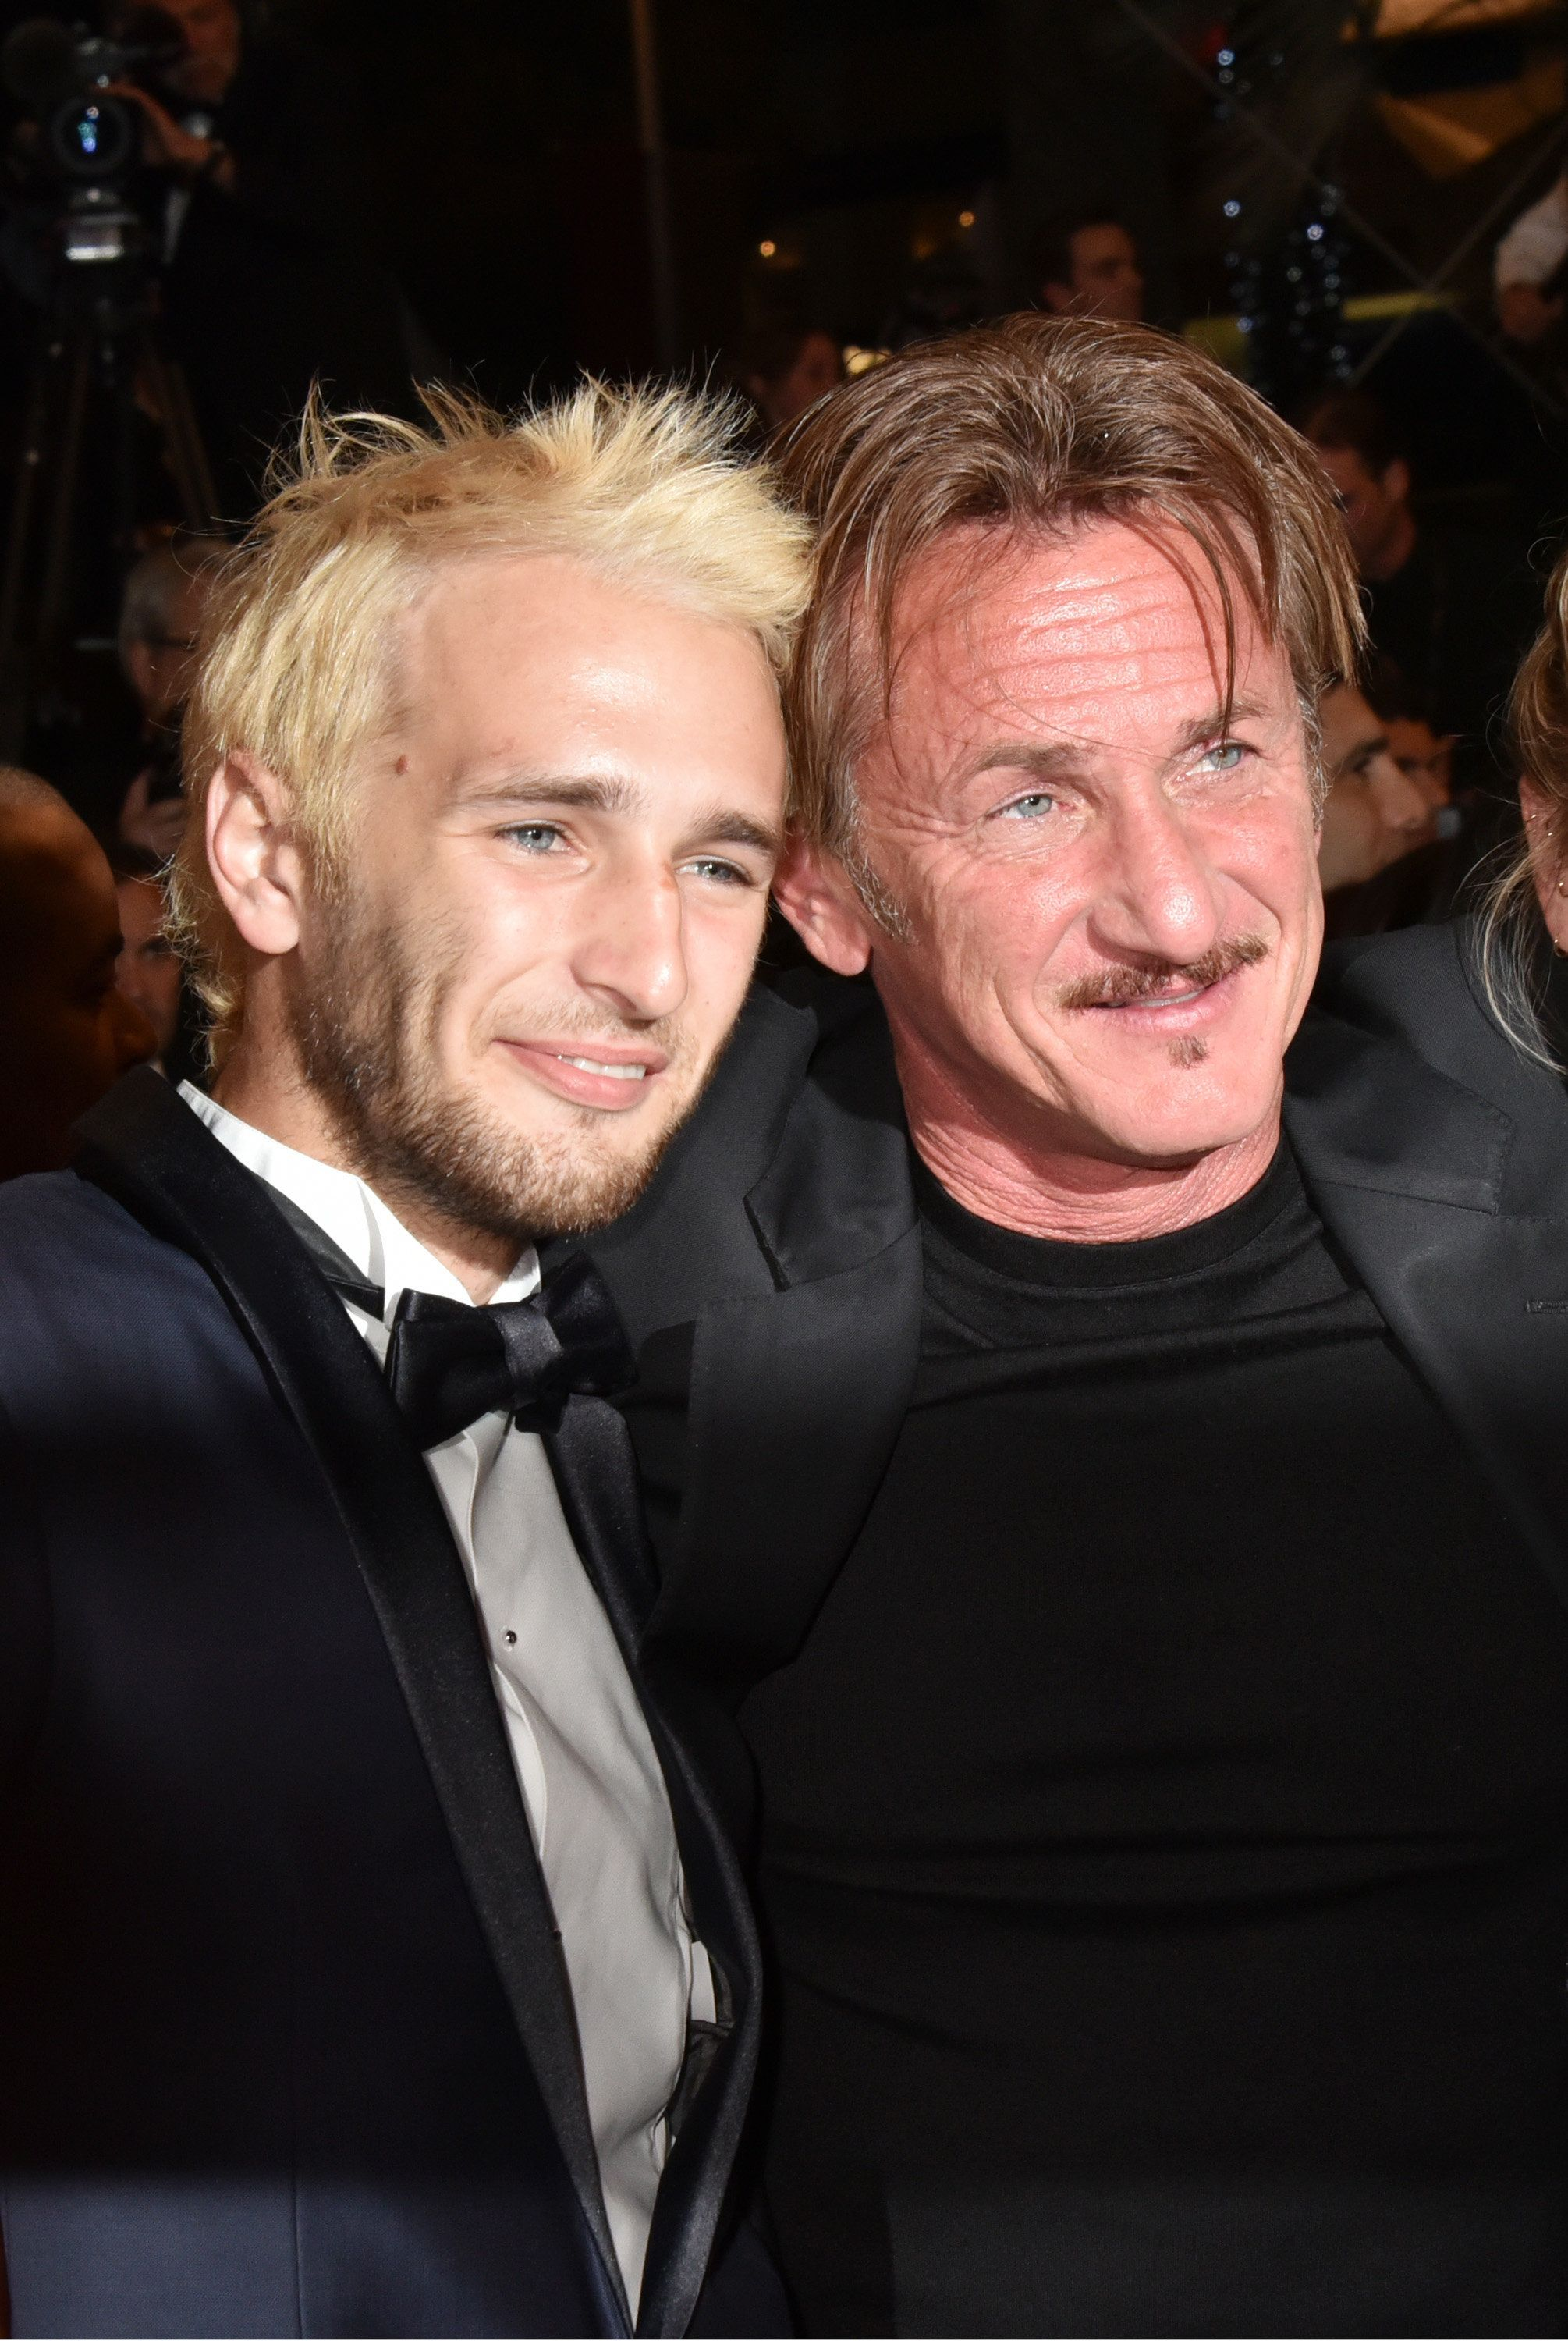 CANNES, FRANCE - MAY 20: Hopper Penn and his father director Sean Penn attend 'The Last Face' Premiere during the 69th annual Cannes Film Festival at the Palais des Festivals on May 20, 2016 in Cannes, France. (Photo by Foc Kan/FilmMagic)'n'n'n'n'n